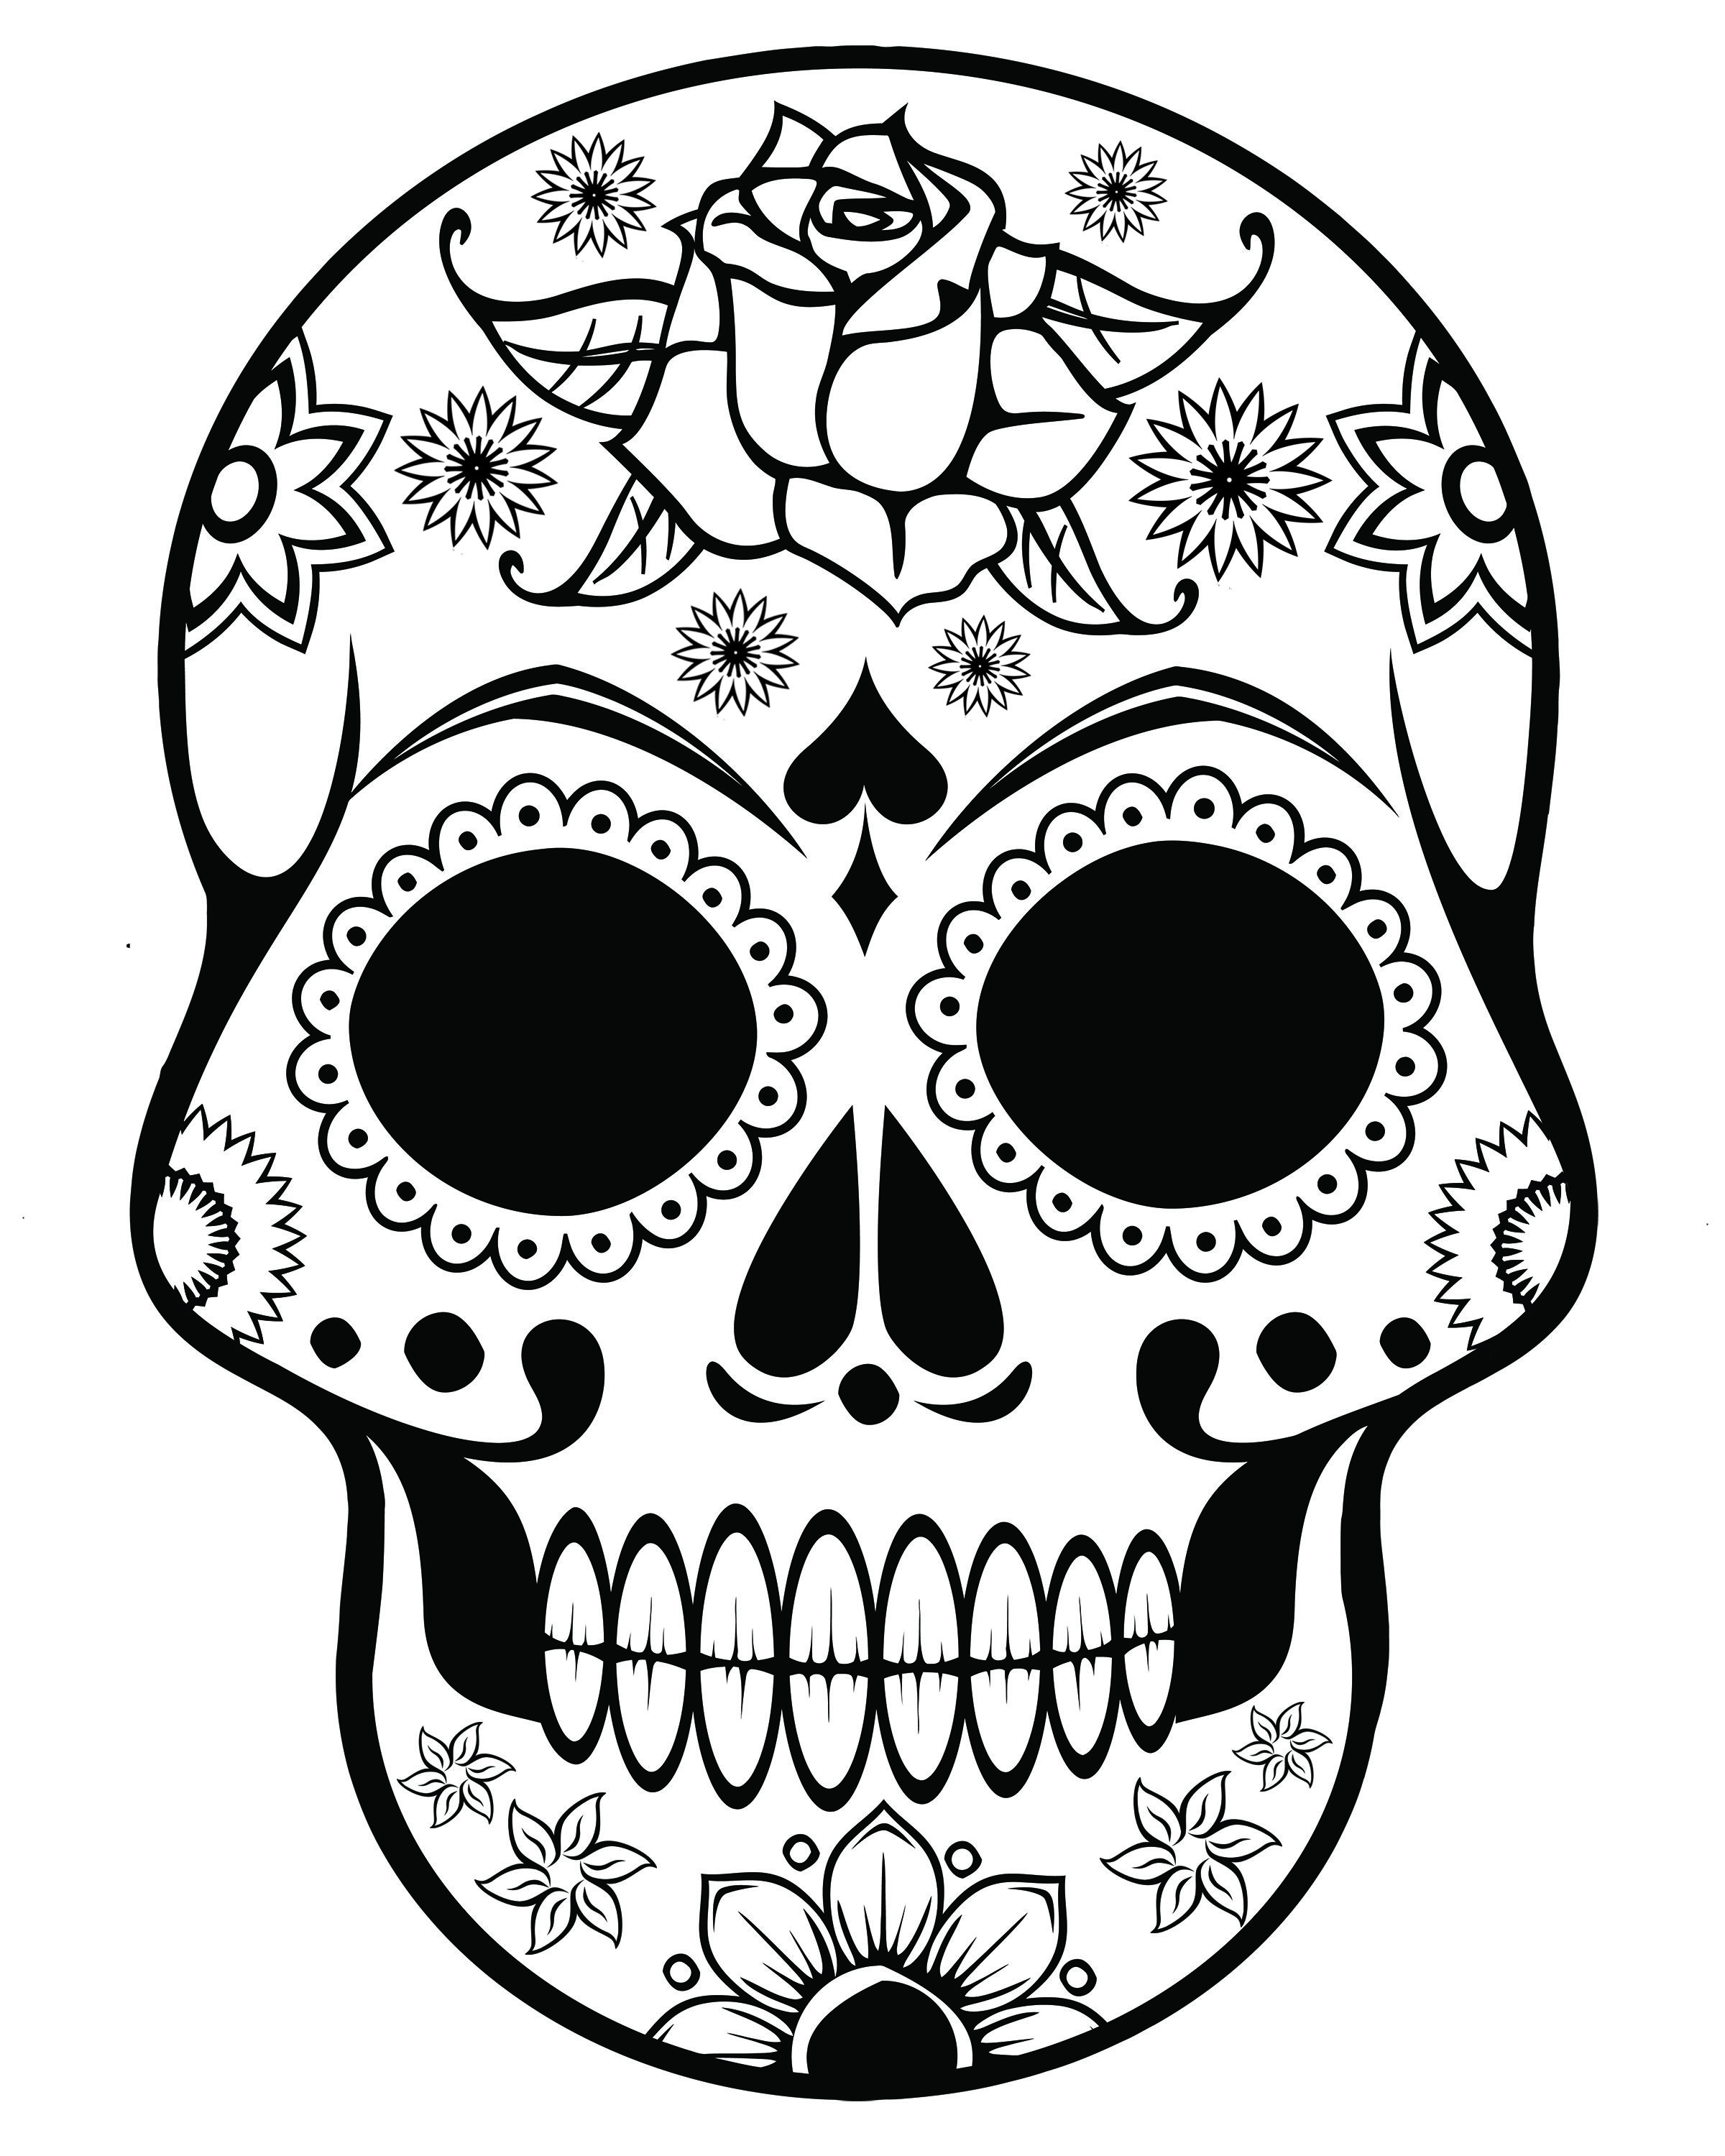 Printable drawing pages for adults - Free Printable Halloween Coloring Pages For Adults Sugar Skull With Ornate Flowers